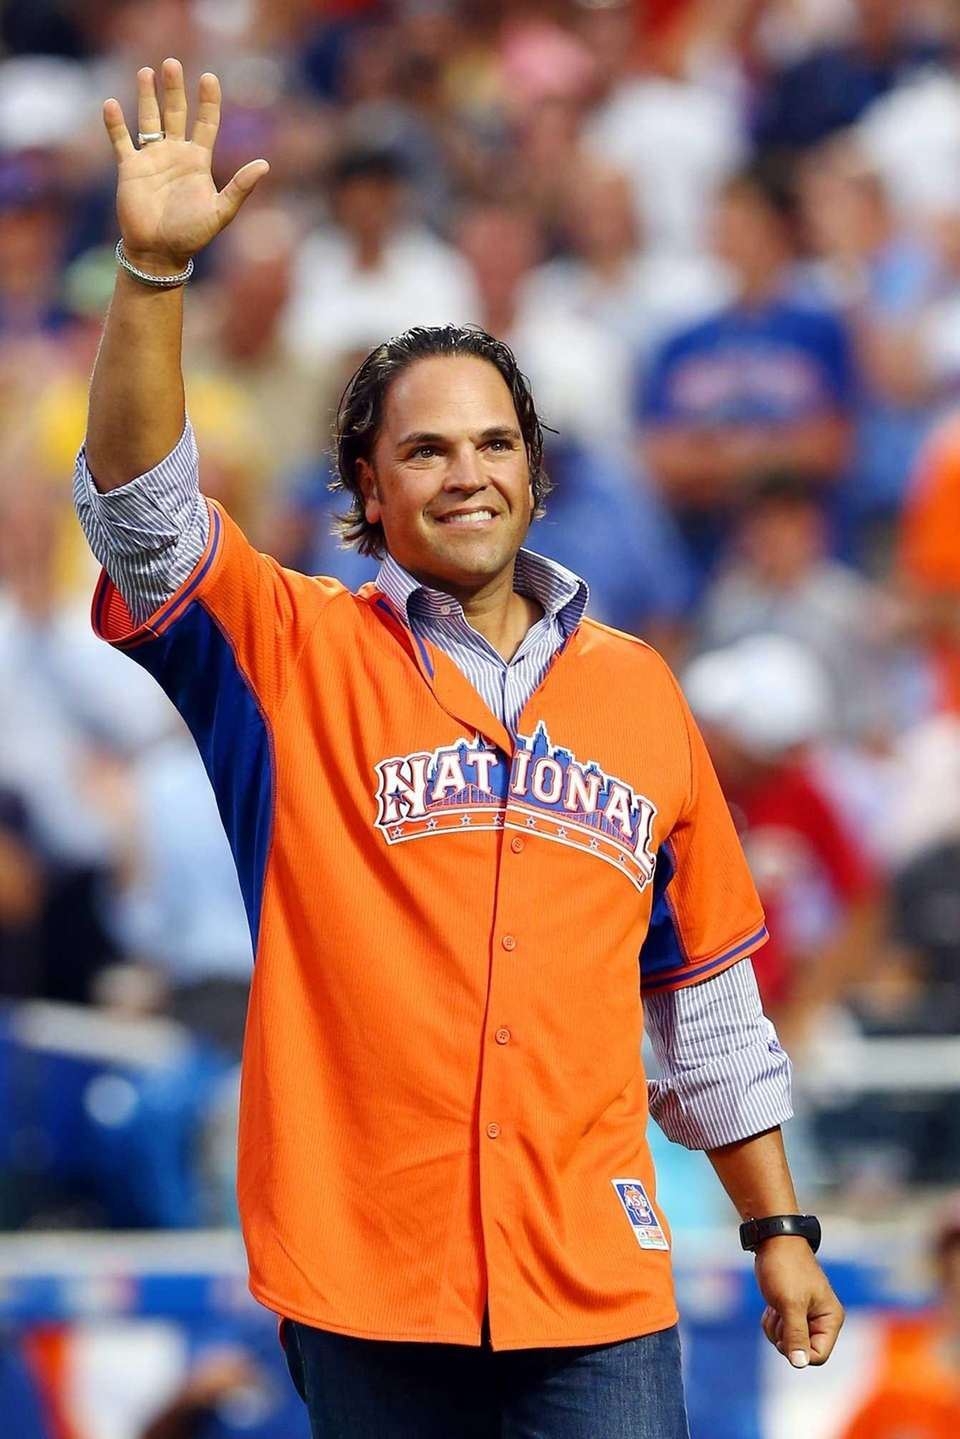 Former baseball player Mike Piazza gestures during the